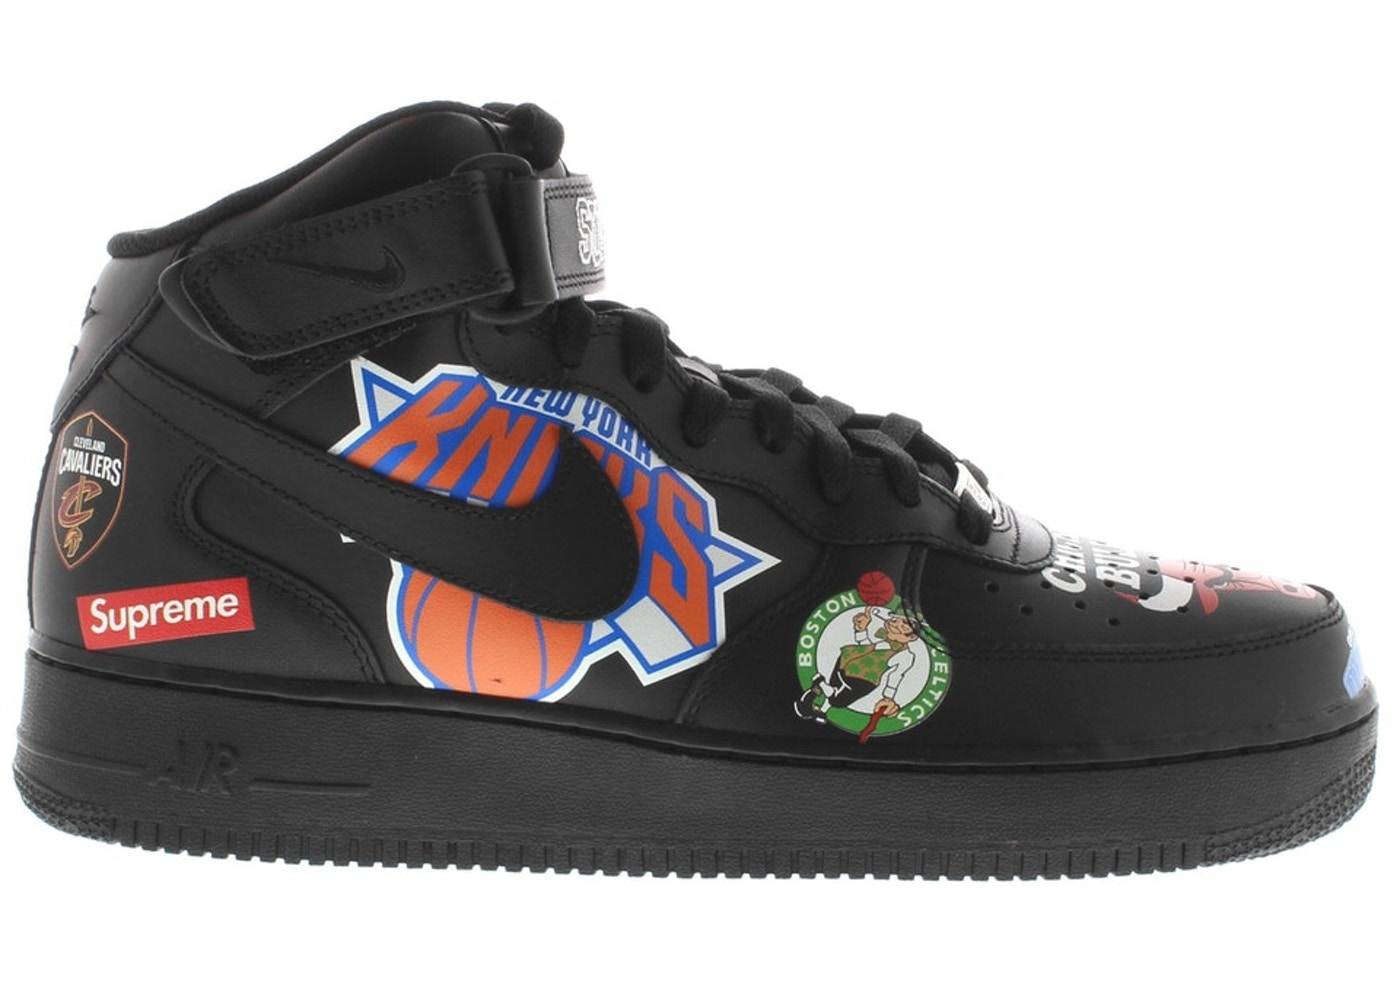 online retailer 14f02 bcf3d Air Force 1 Mid Supreme NBA Black - AQ8017-001